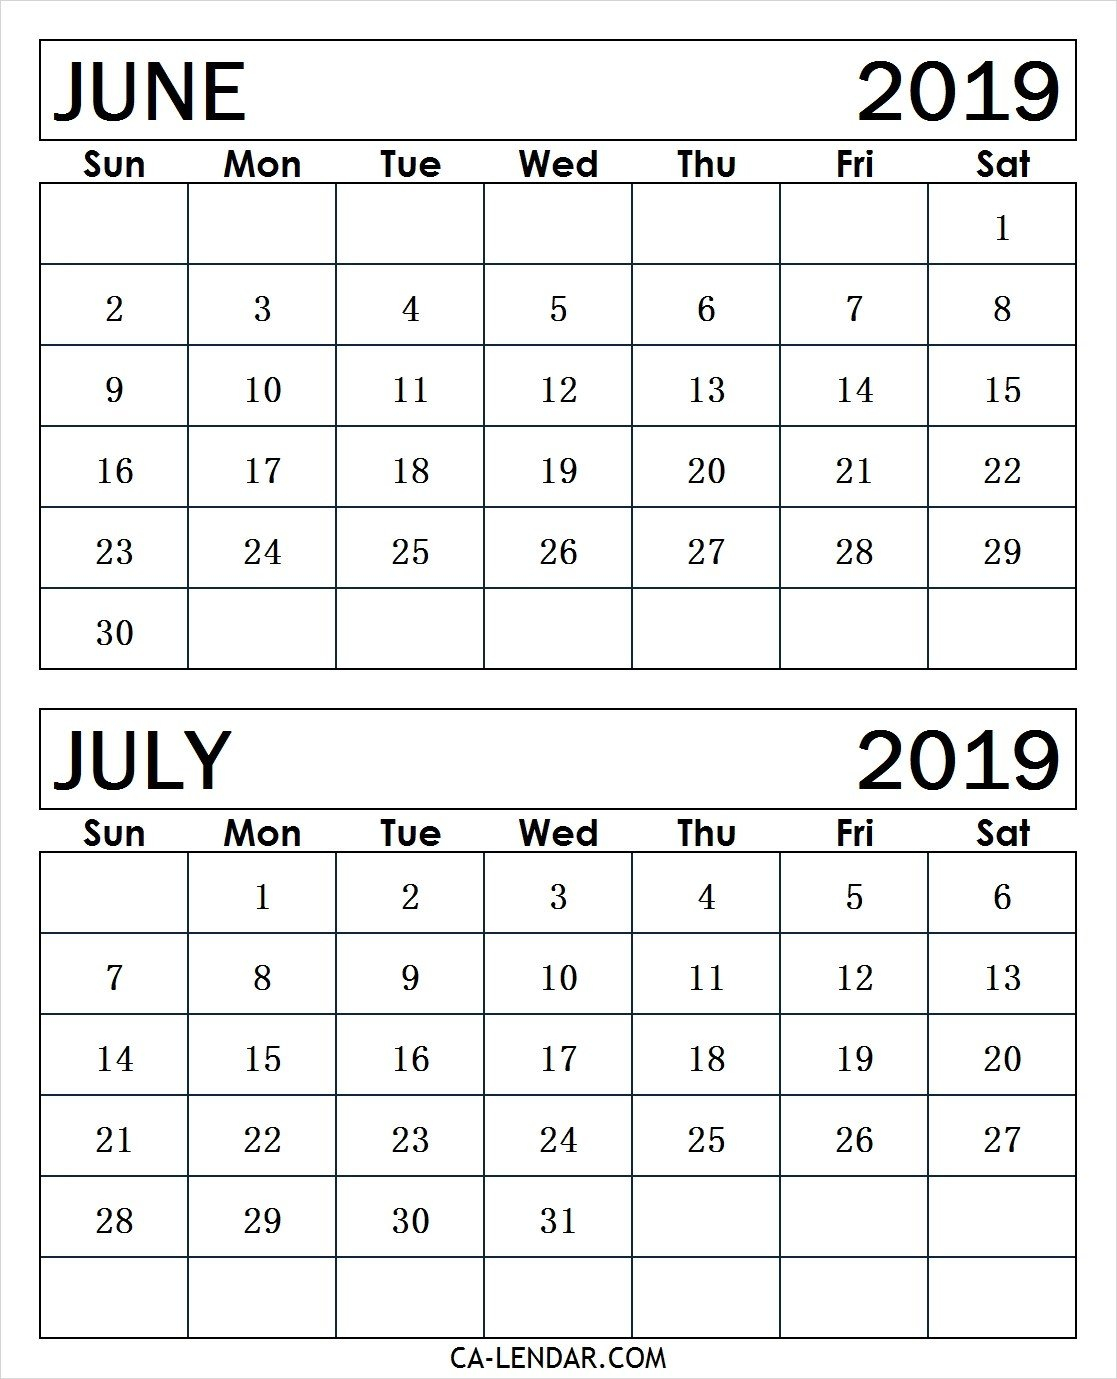 Printable June And July 2019 Calendar Monthly Templates – Calendar Calendar 2019 June July